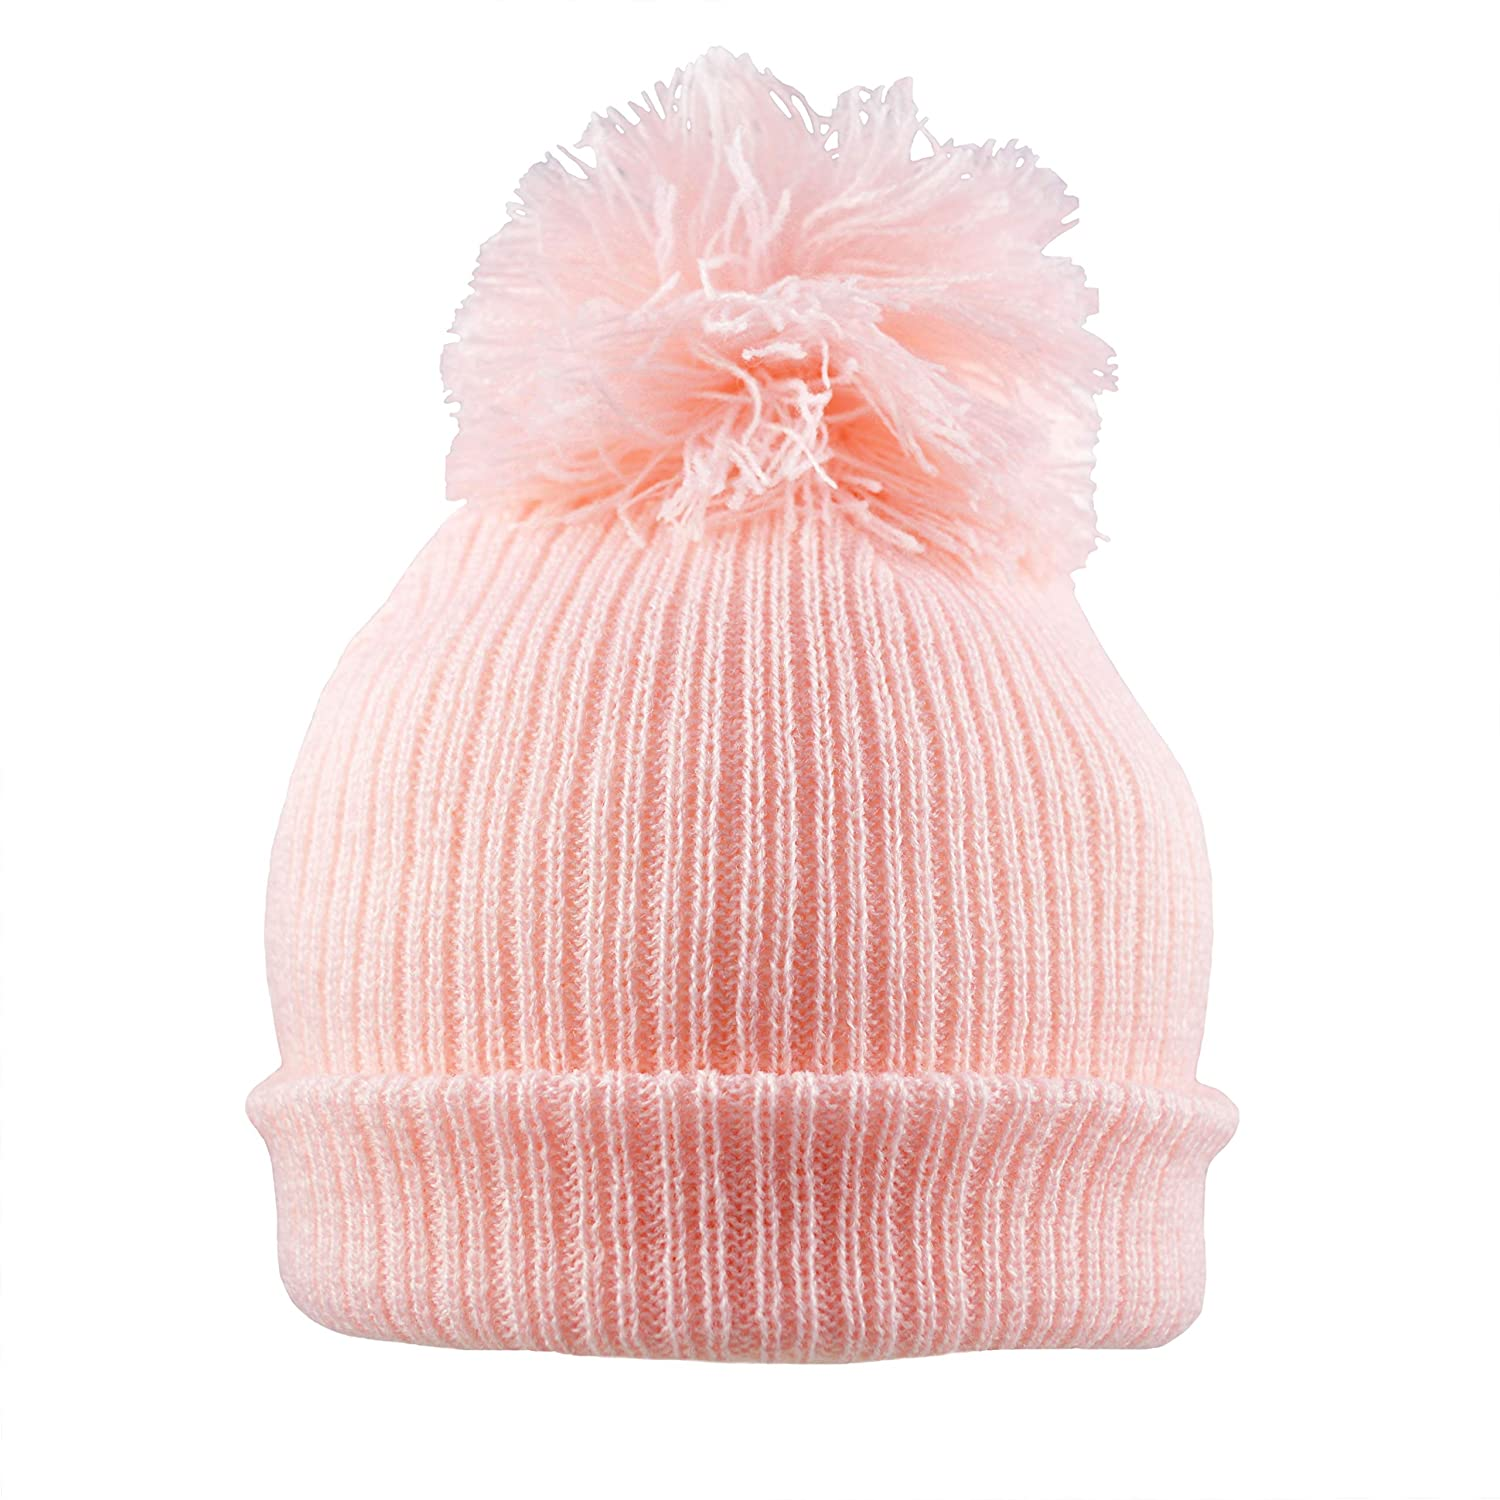 Pesci Baby Boys Girls Pom Pom Hat Plain Knit Kids 6125